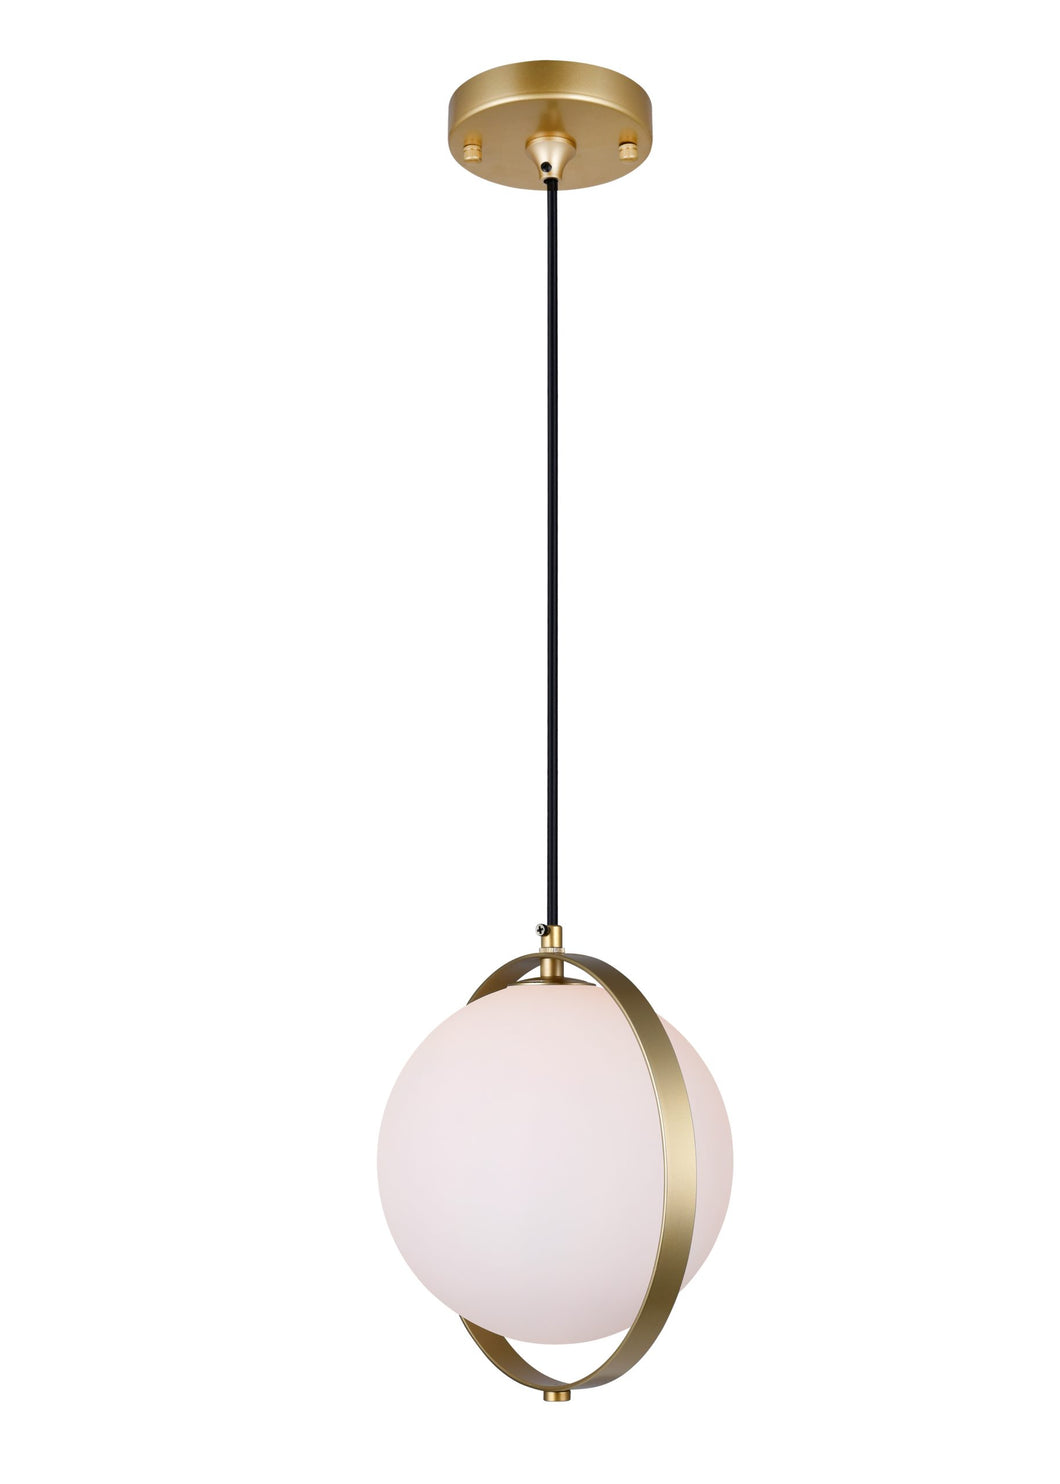 1 LIGHT MINI PENDANT WITH BRASS FINISH - Dream art Gallery